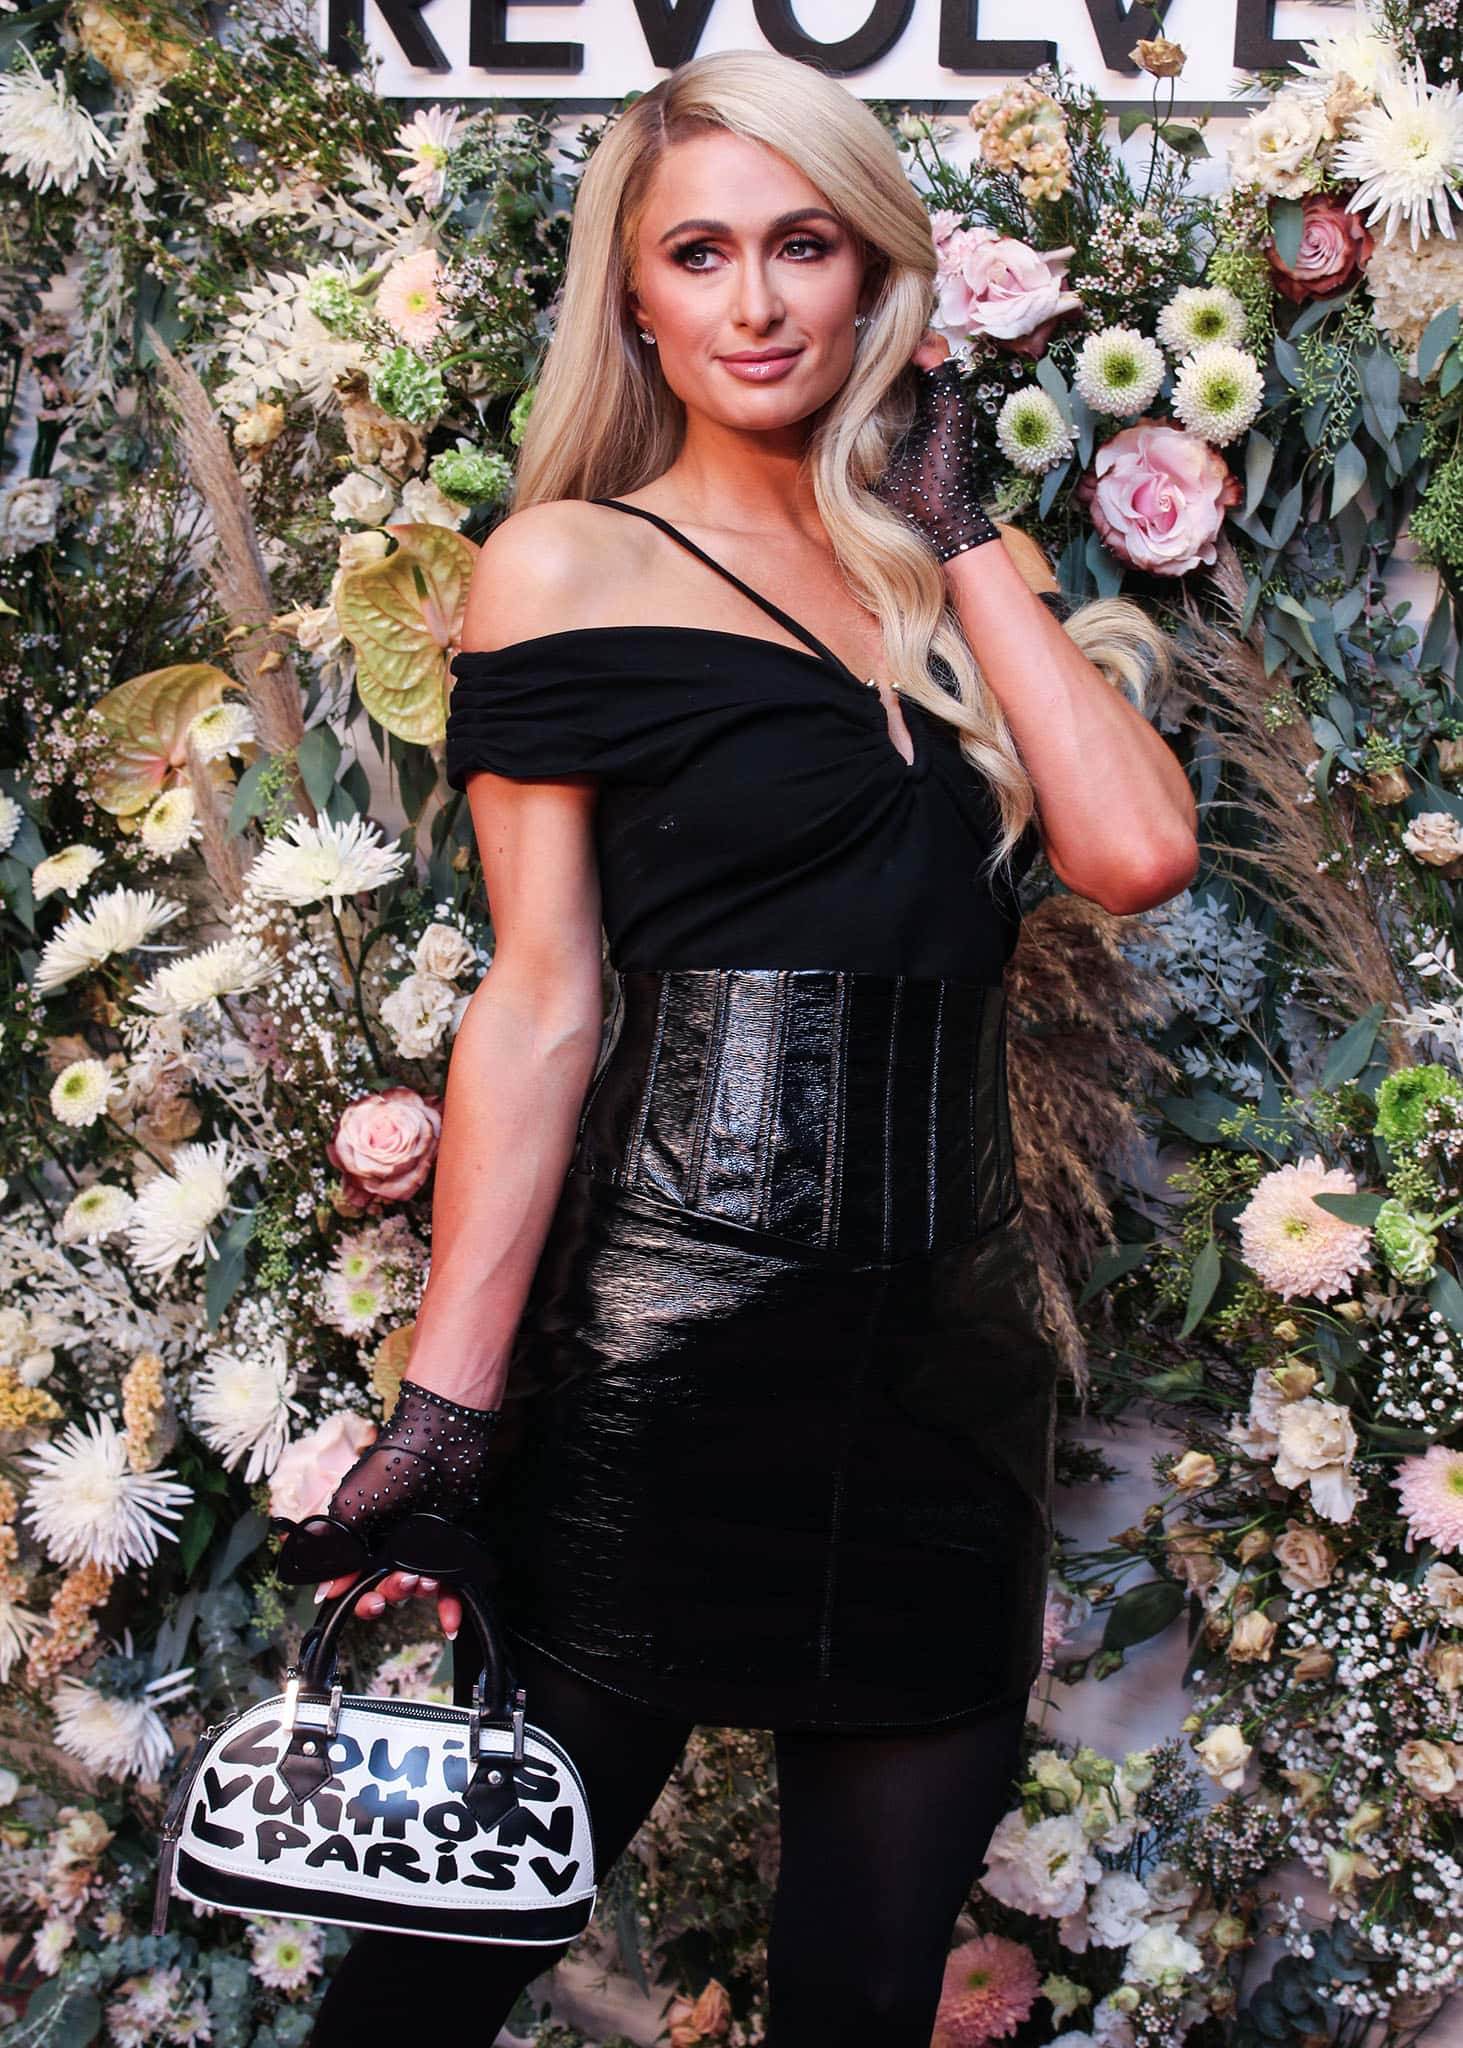 Paris Hilton wears wavy hair extensions with pink lipstick and black sheer fingerless gloves